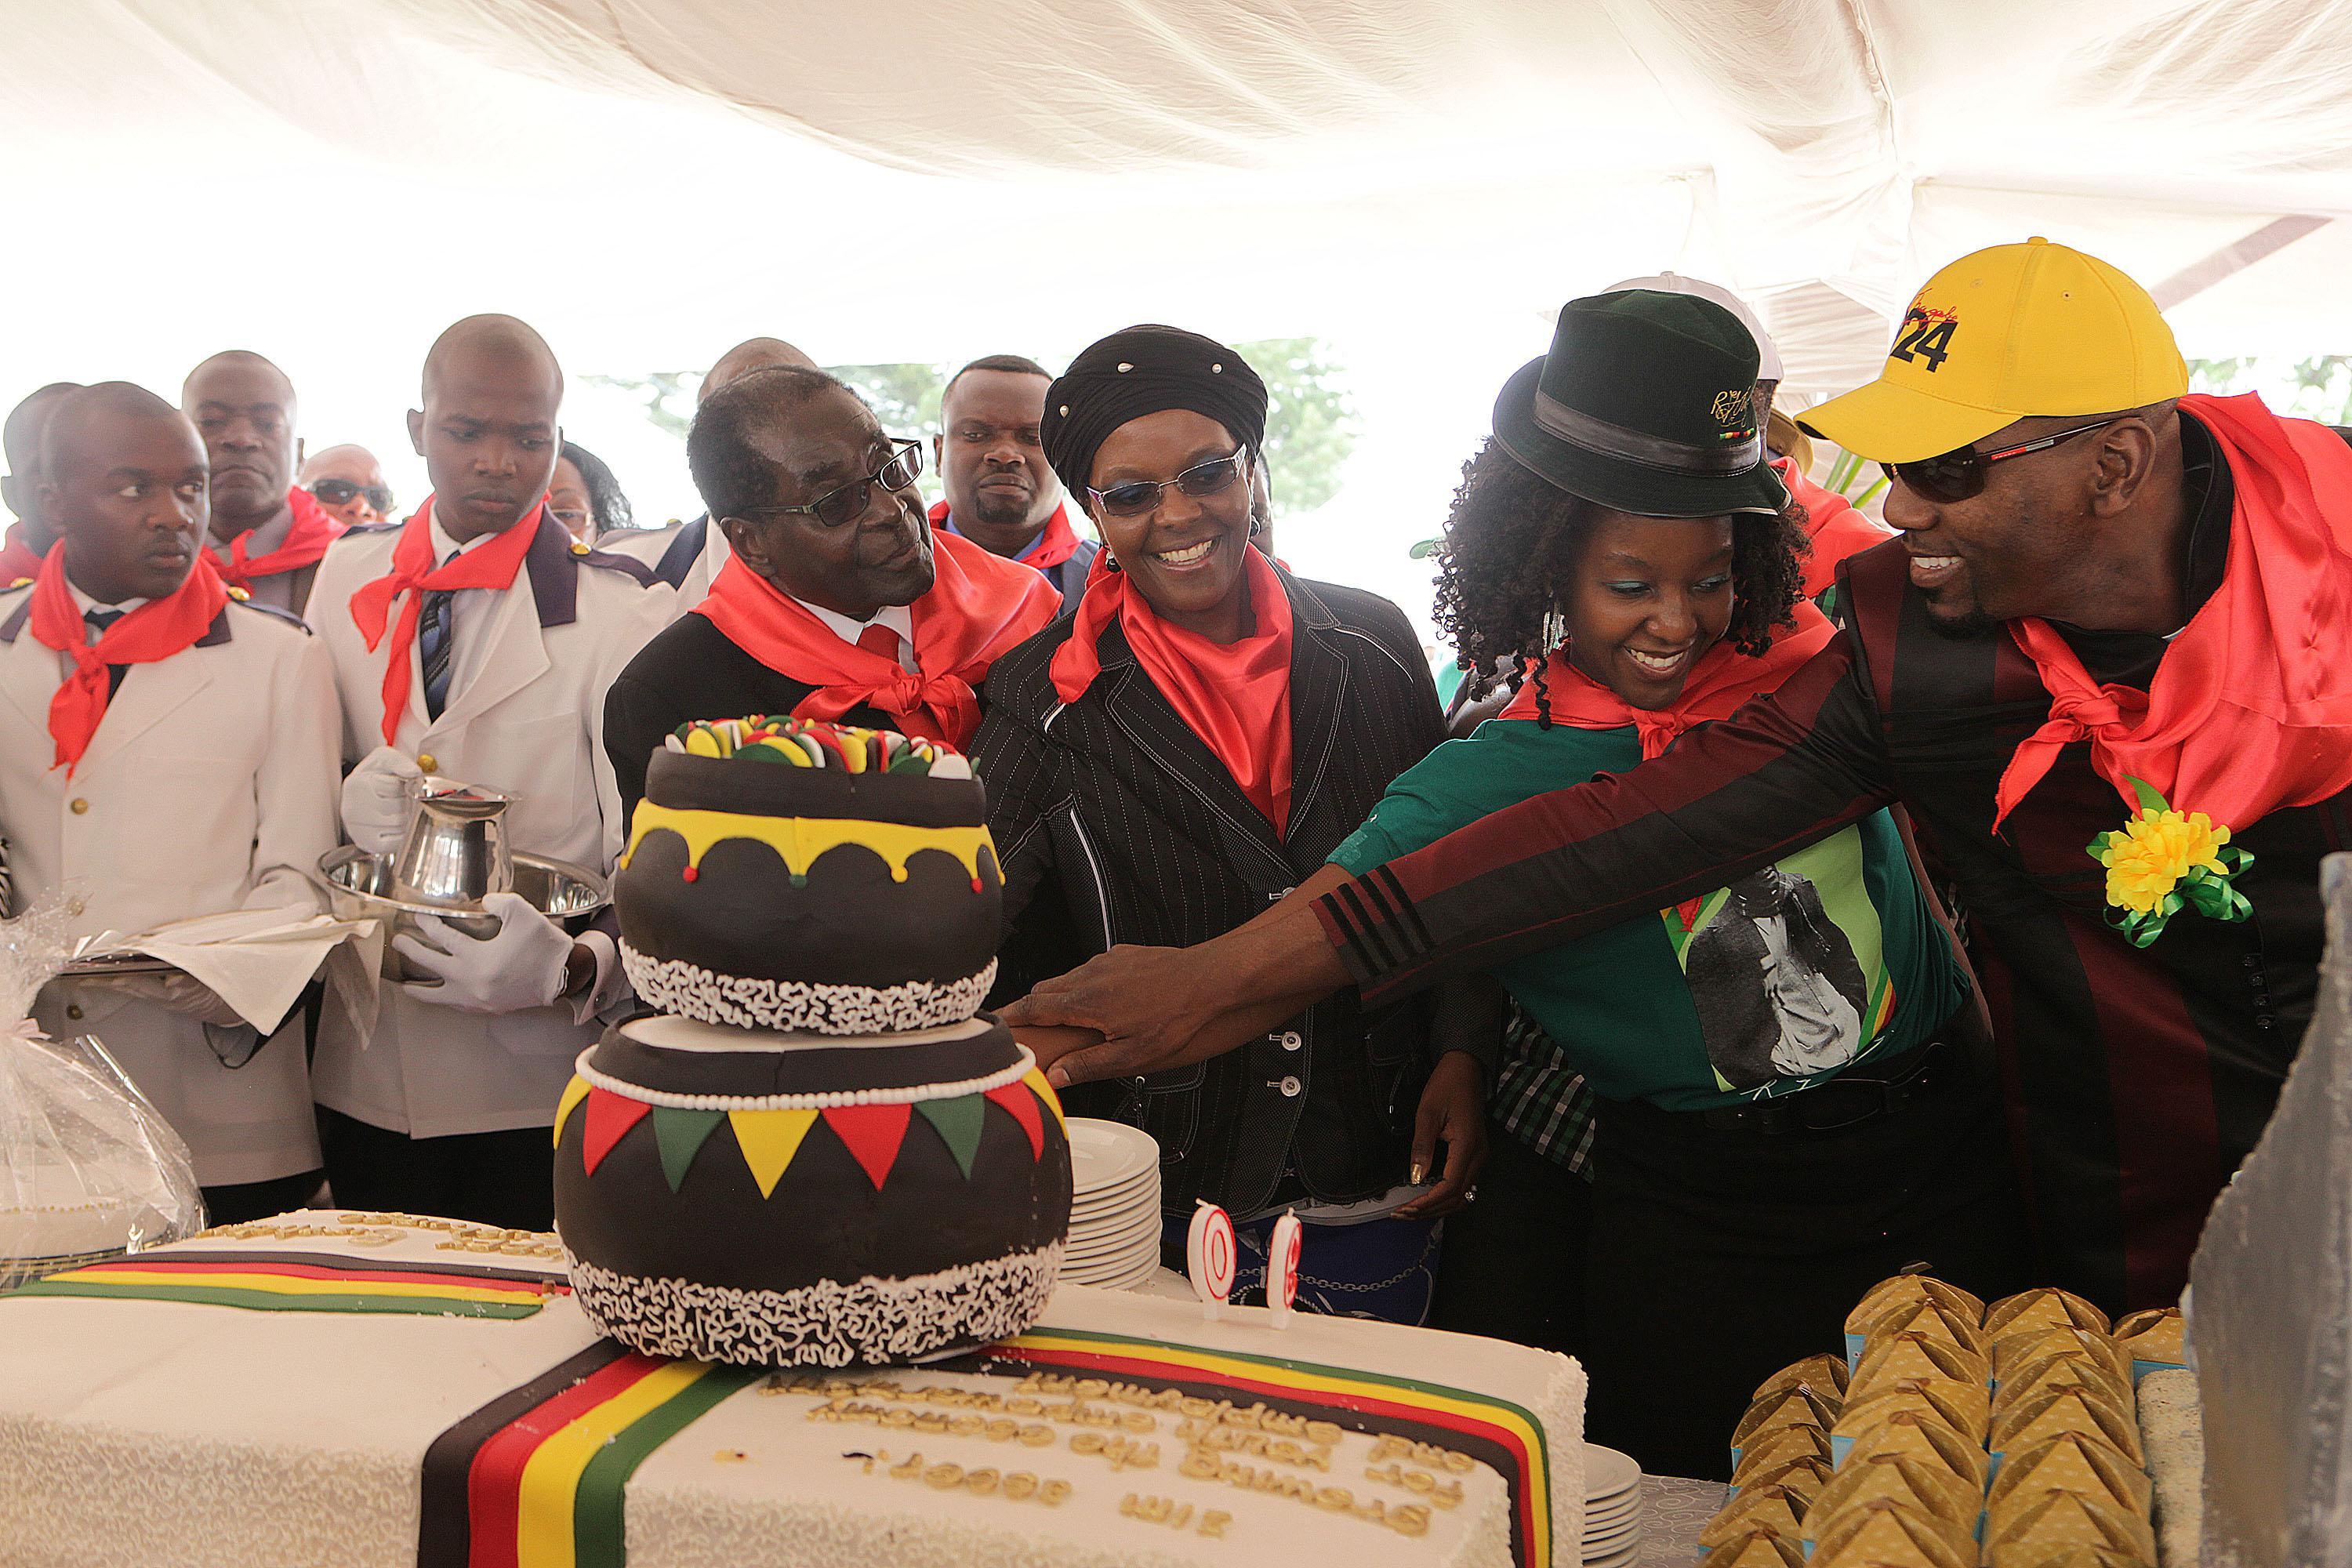 President Robert Mugabe, center left, his wife Grace, daughter Bona and her fiance Sam Chikoore cut his birthday cake during celebrations to mark his 90th Birthday in Marondera about 100 kilometres east of Harare, Sunday, February, 23, 2014. Mugabe who is Africa's oldest leader has been in power in the Southern African nation since 1980 (AP Photo/Tsvangirayi Mukwazhi)